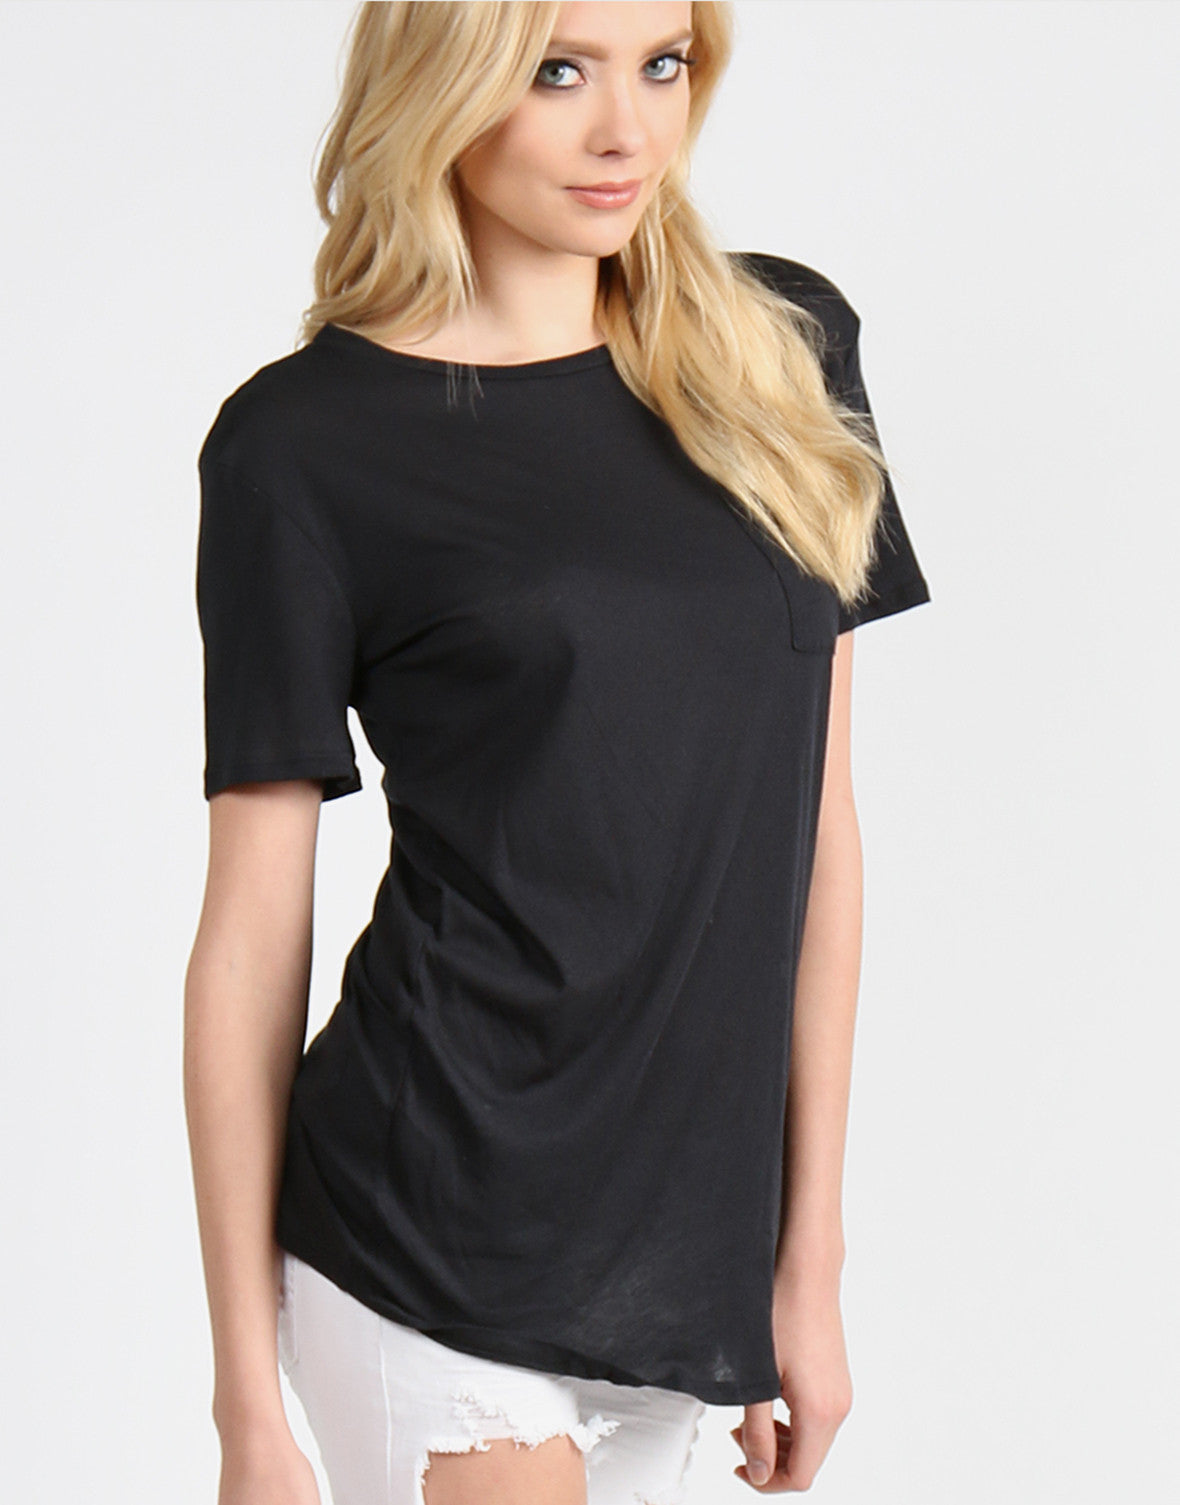 Lightweight Pocket Tunic Tee - Black